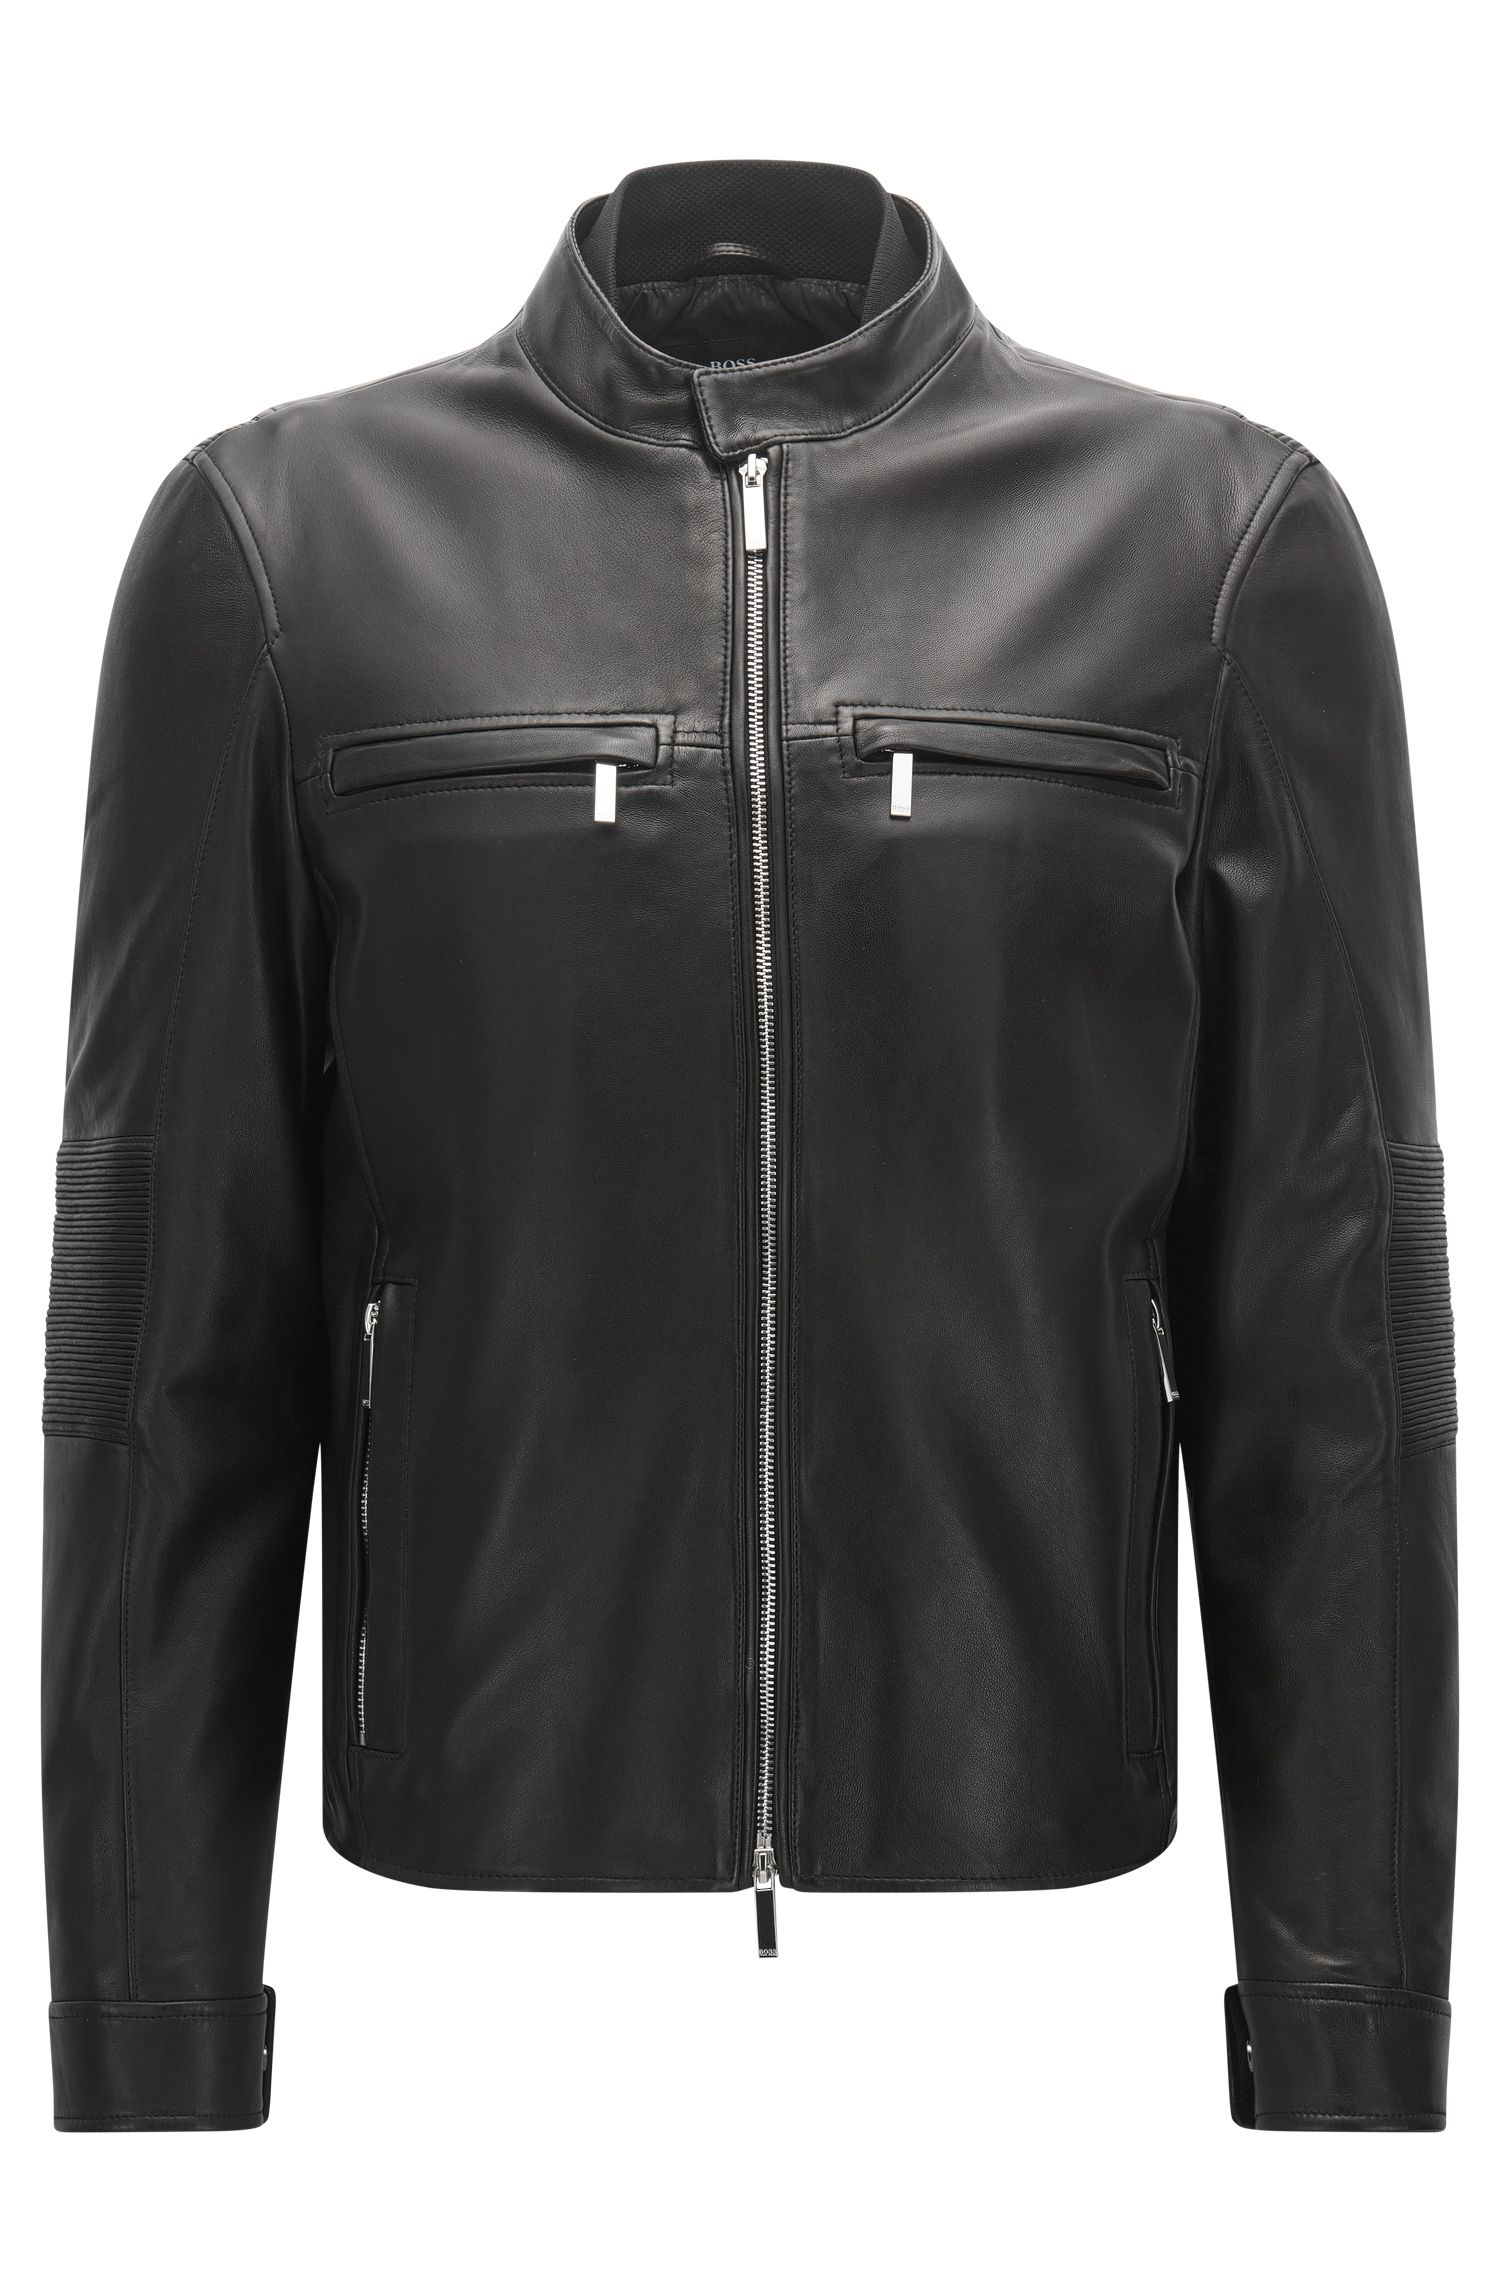 Blouson de motard Slim Fit de la collection Mercedes-Benz, en cuir nappa